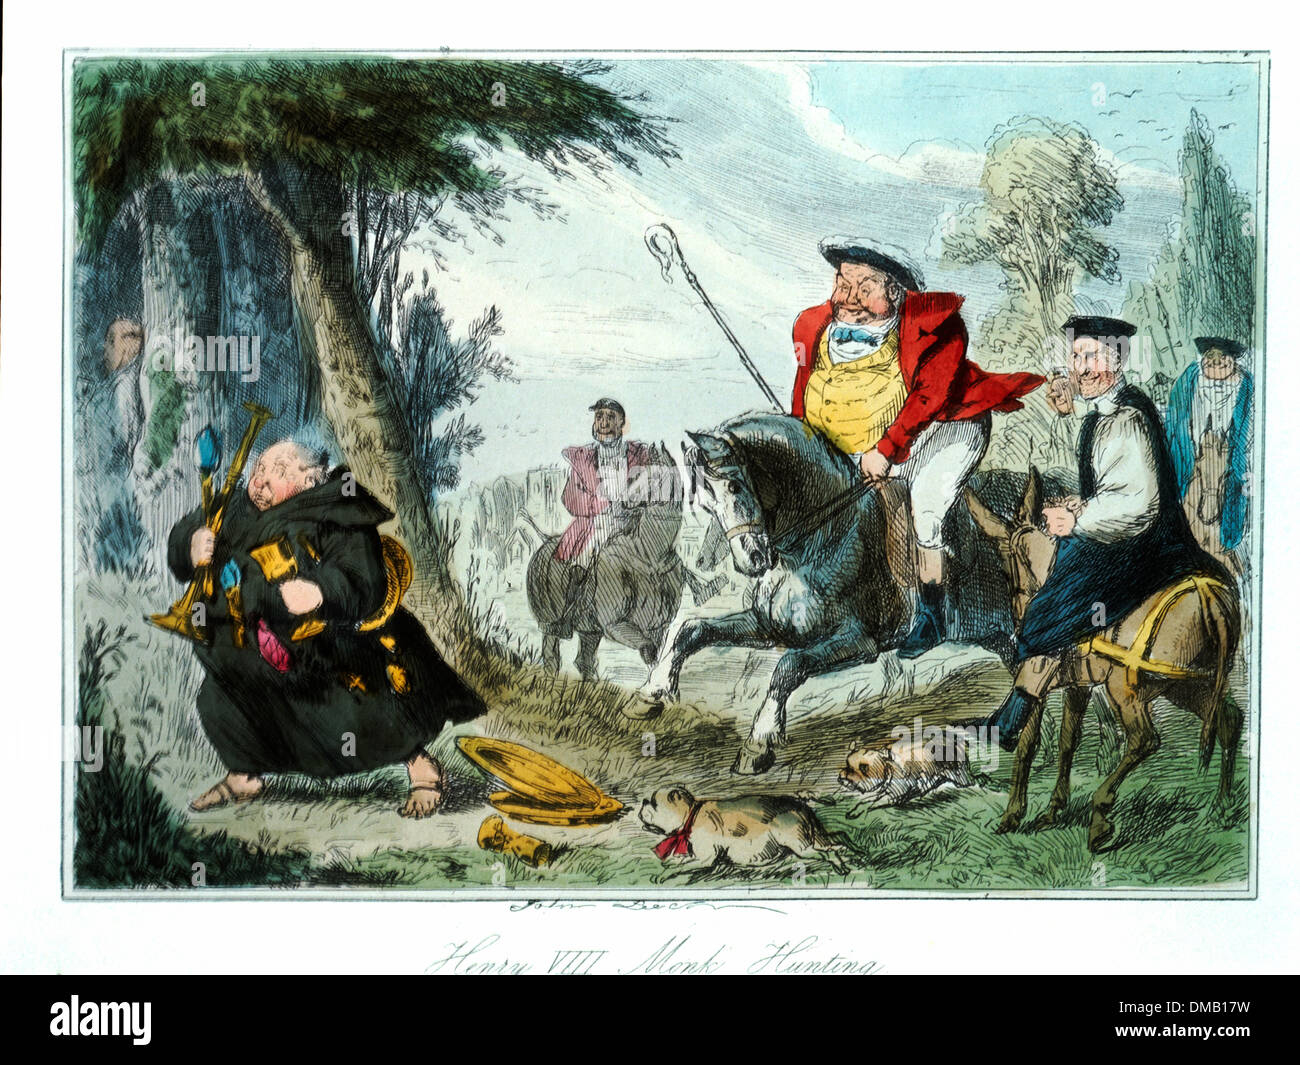 Henry VIII Monk Hunting, Comic History of England, Colored Etching by John Leech, 1850 - Stock Image